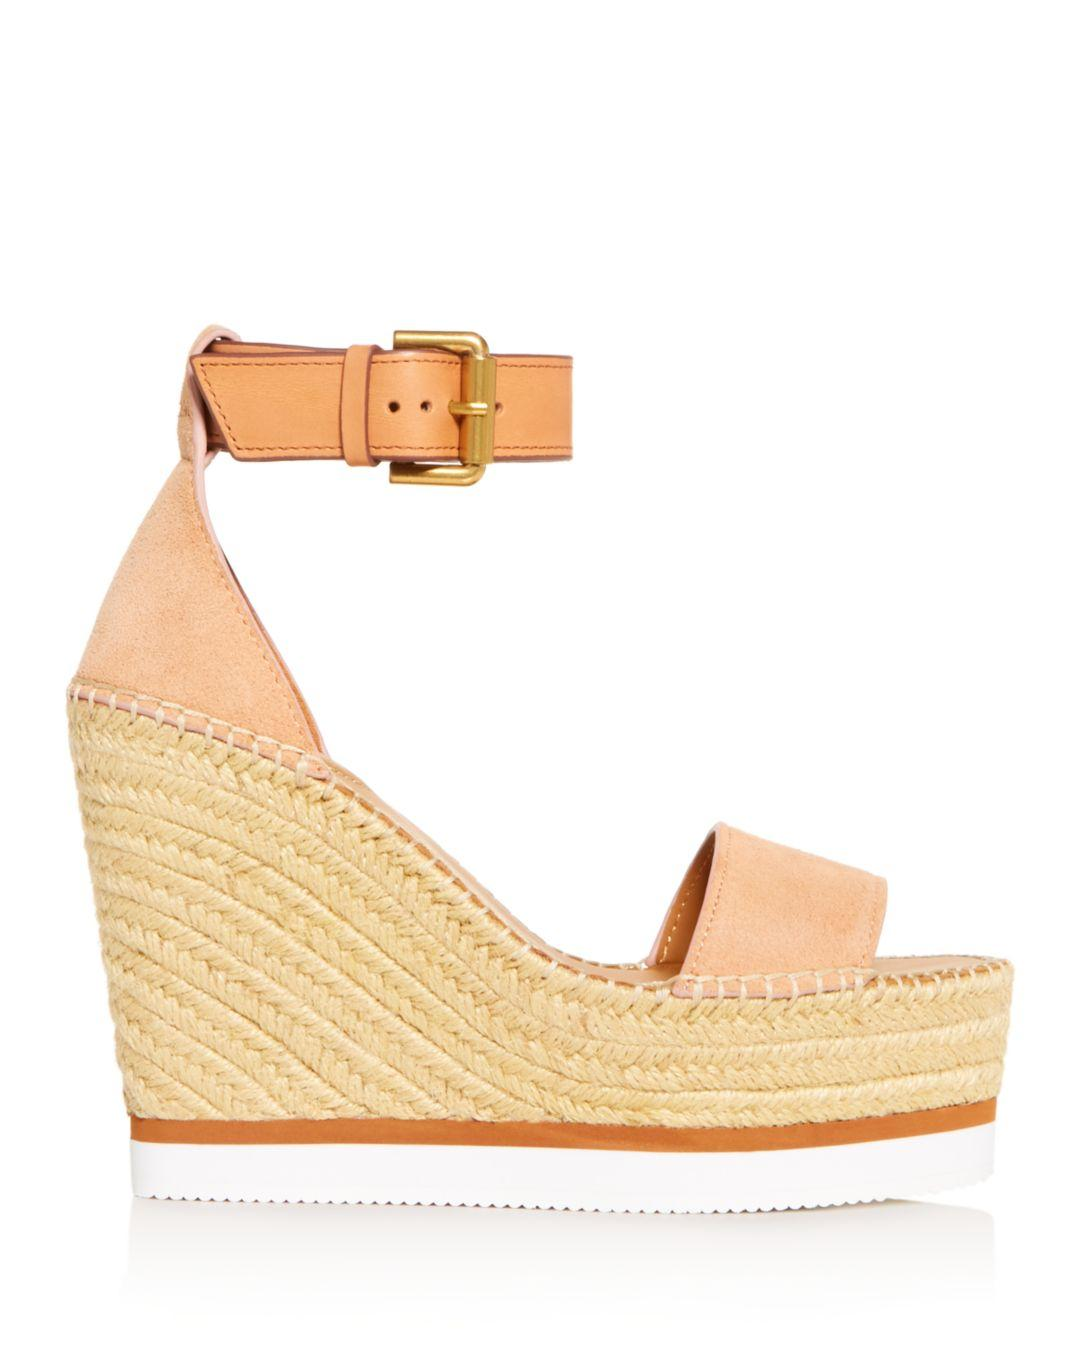 d34bc55701f5 See By Chloé Glyn Leather Espadrille Platform Wedge Ankle Strap Sandals -  Lyst